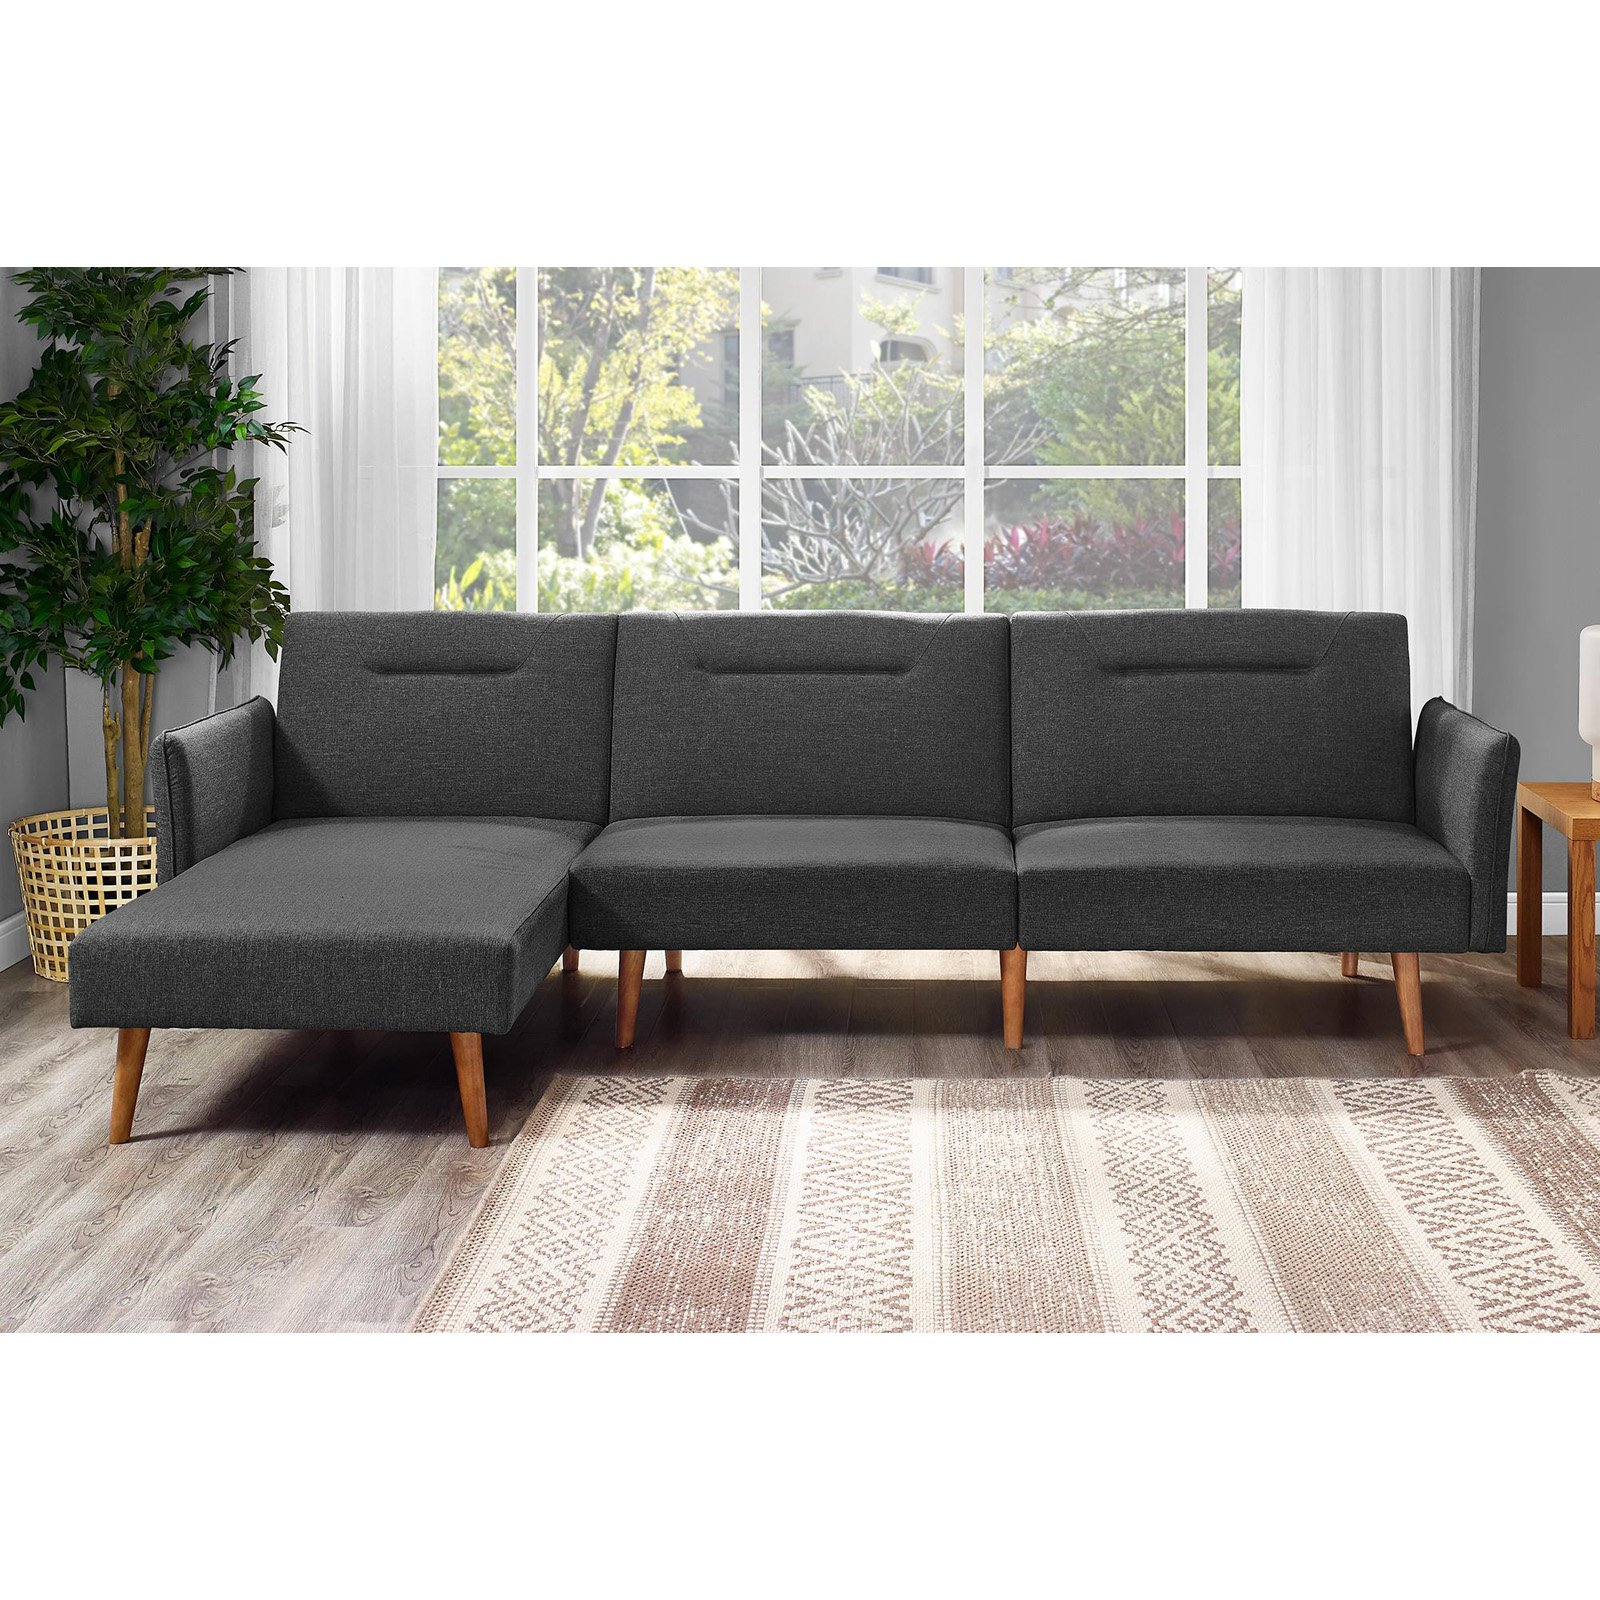 DHP Brent Upholstered Sectional Futon Couch, Multiple Colors